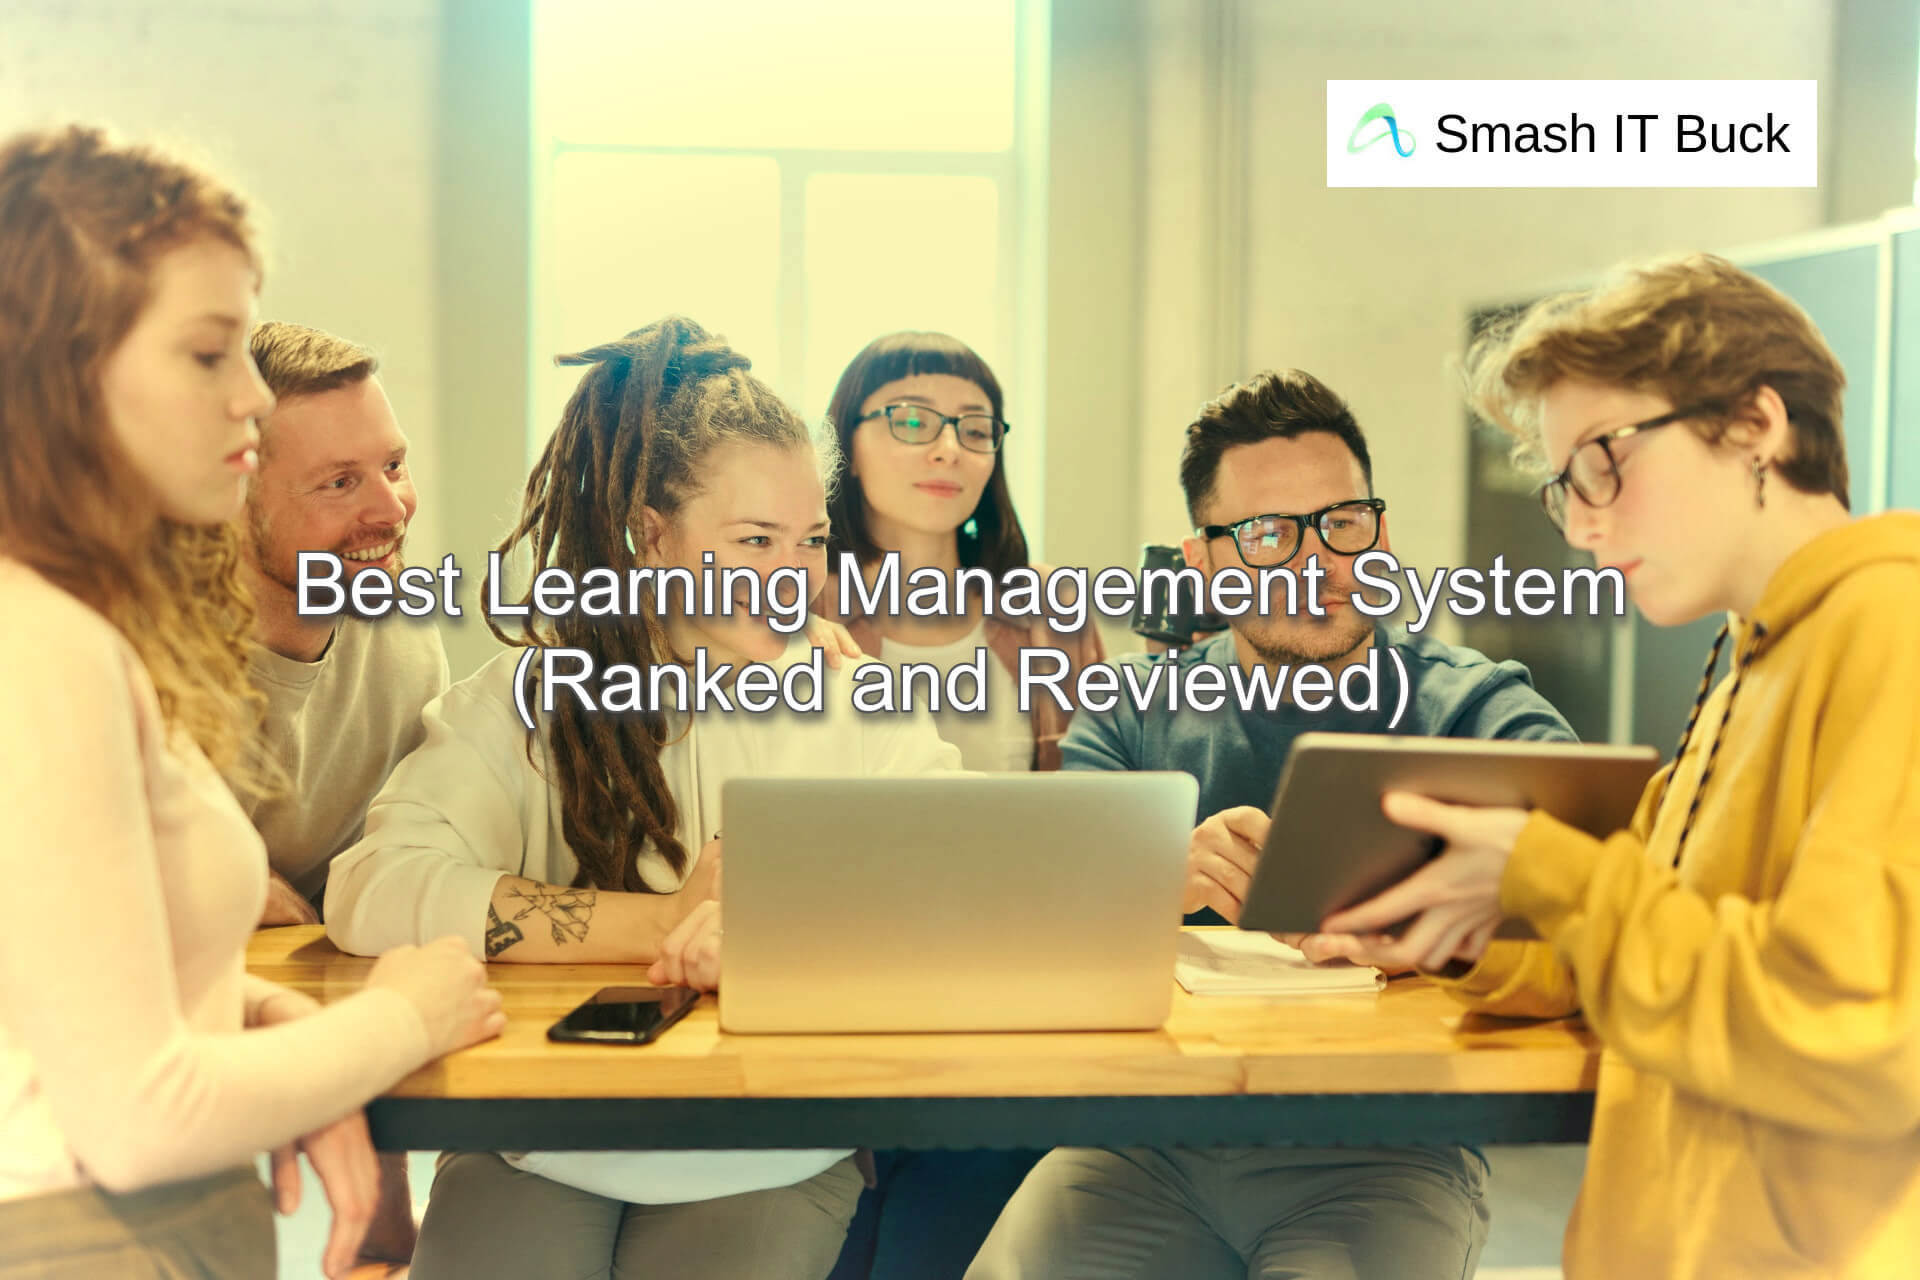 Best Learning Management Systems in 2021